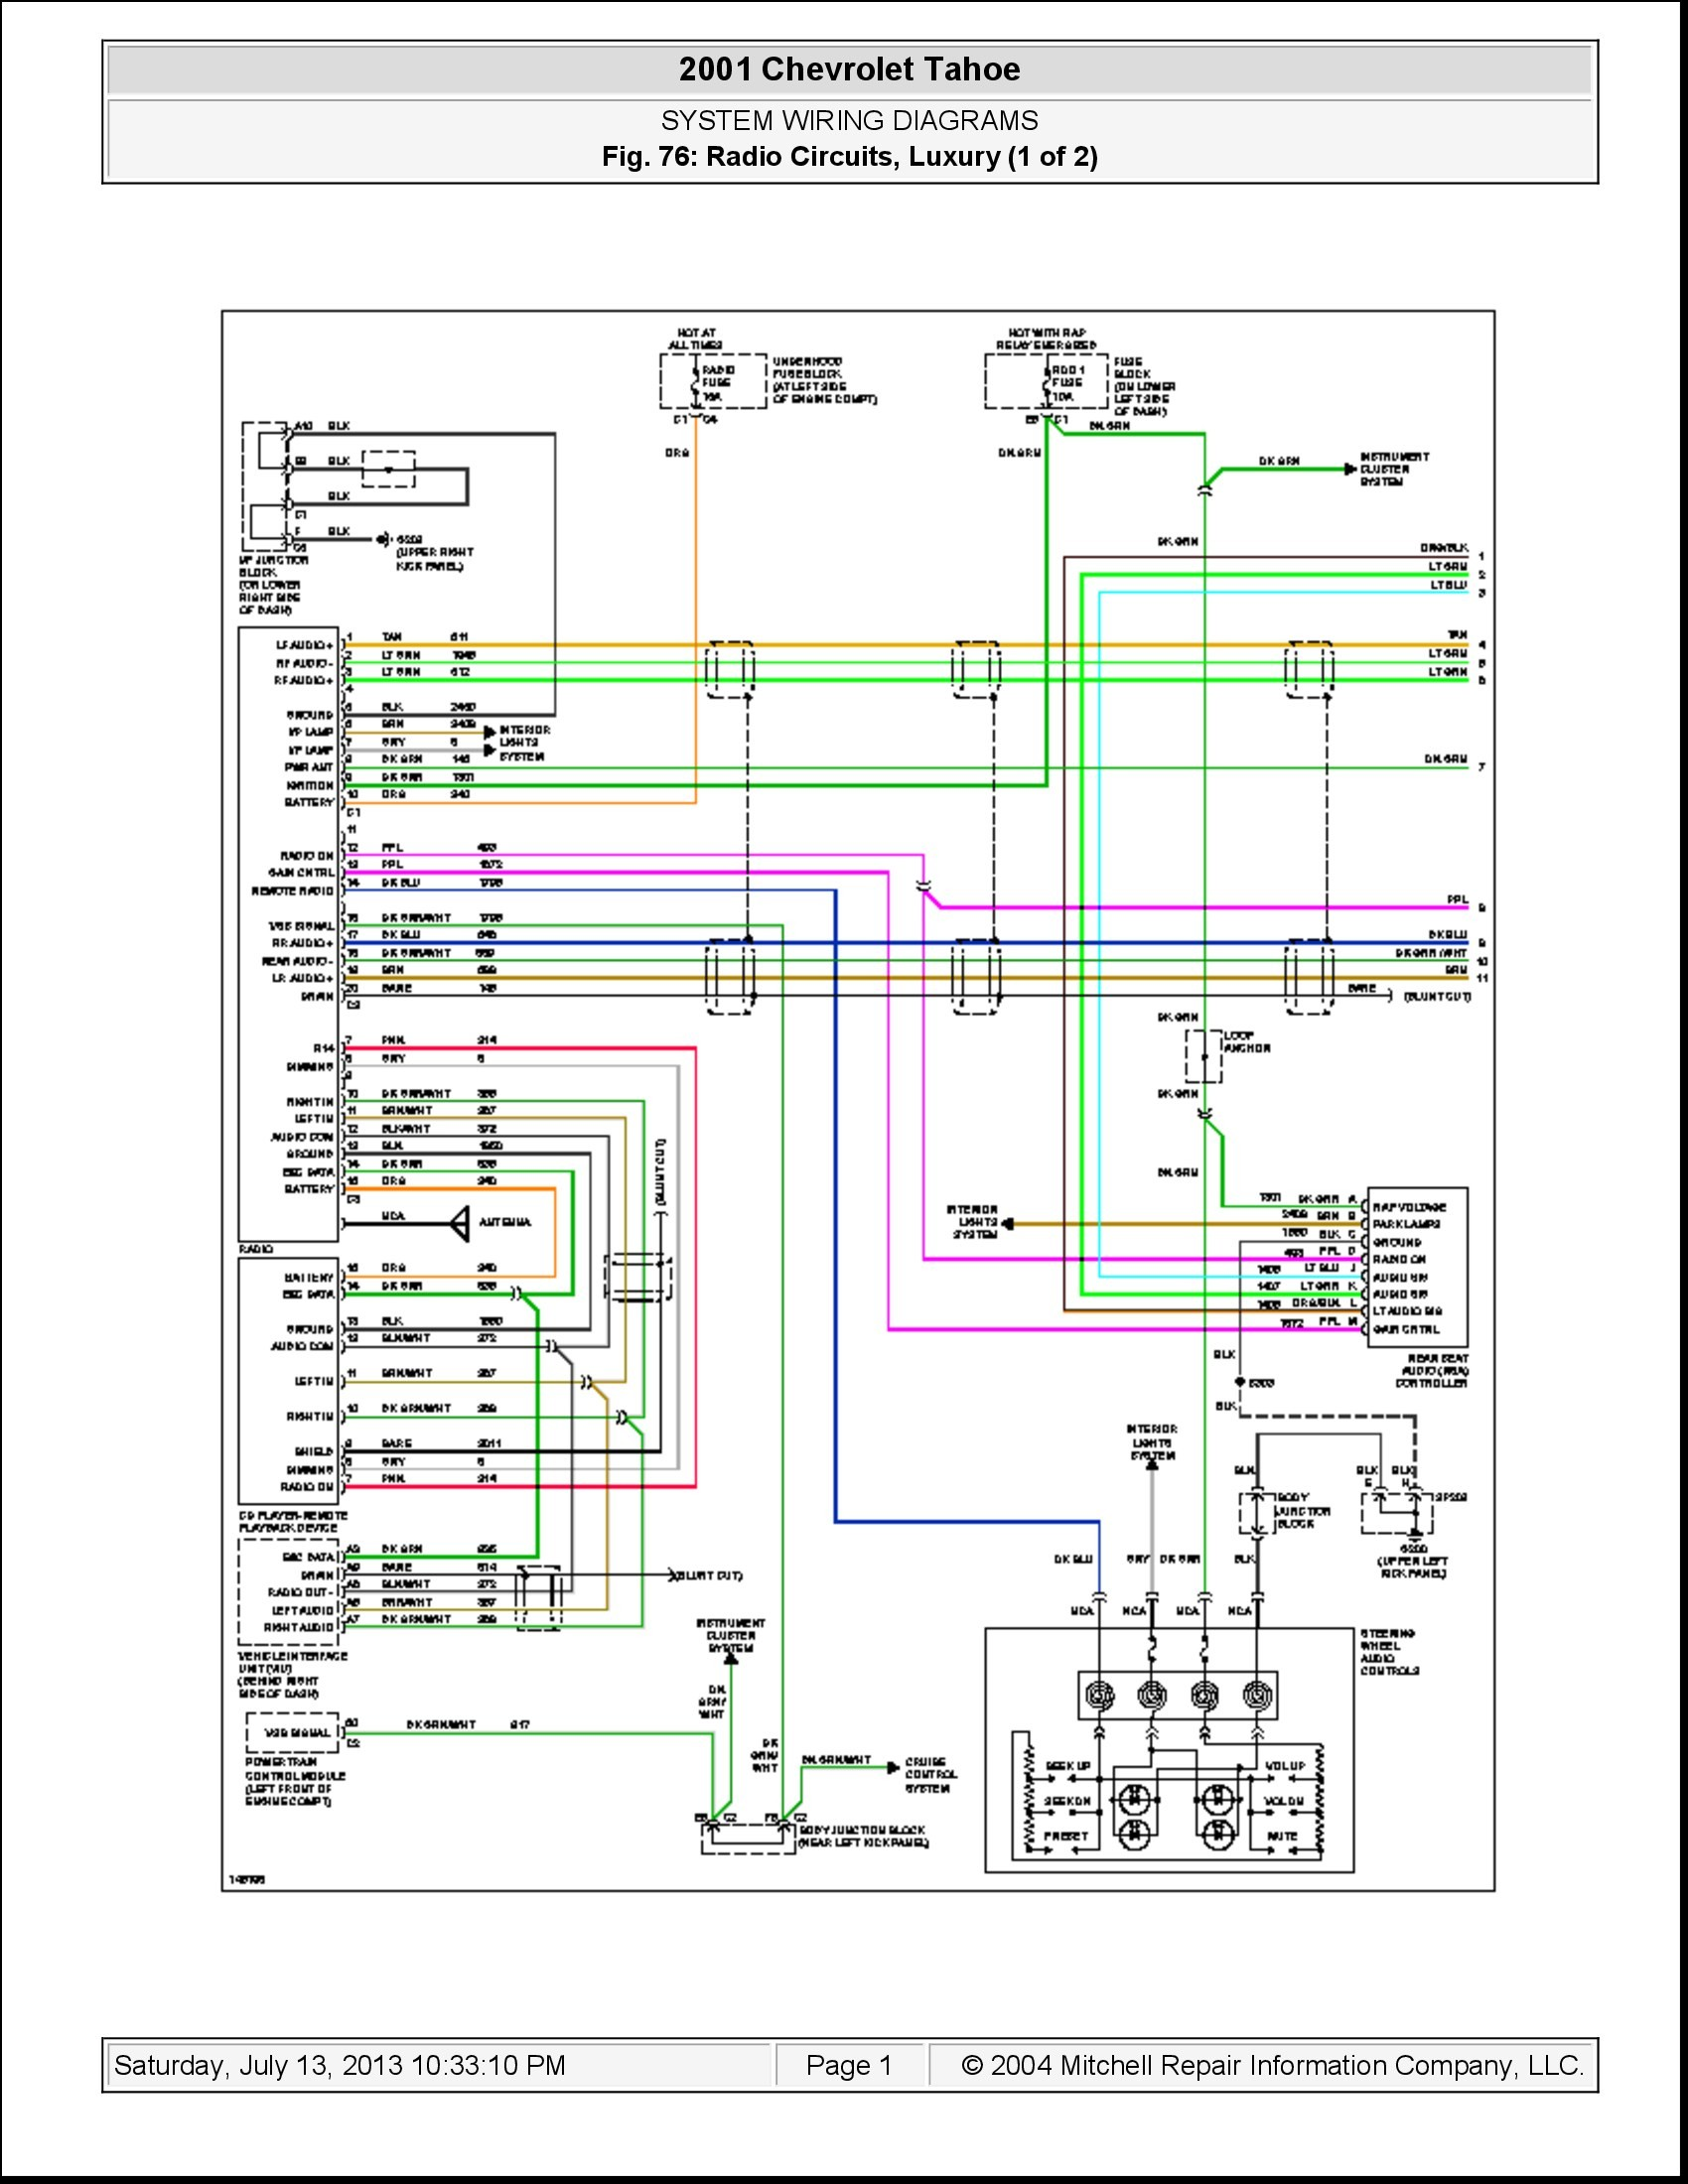 1999 Gmc Wiring Diagram Wiring Diagrams Deliver Deliver Miglioribanche It